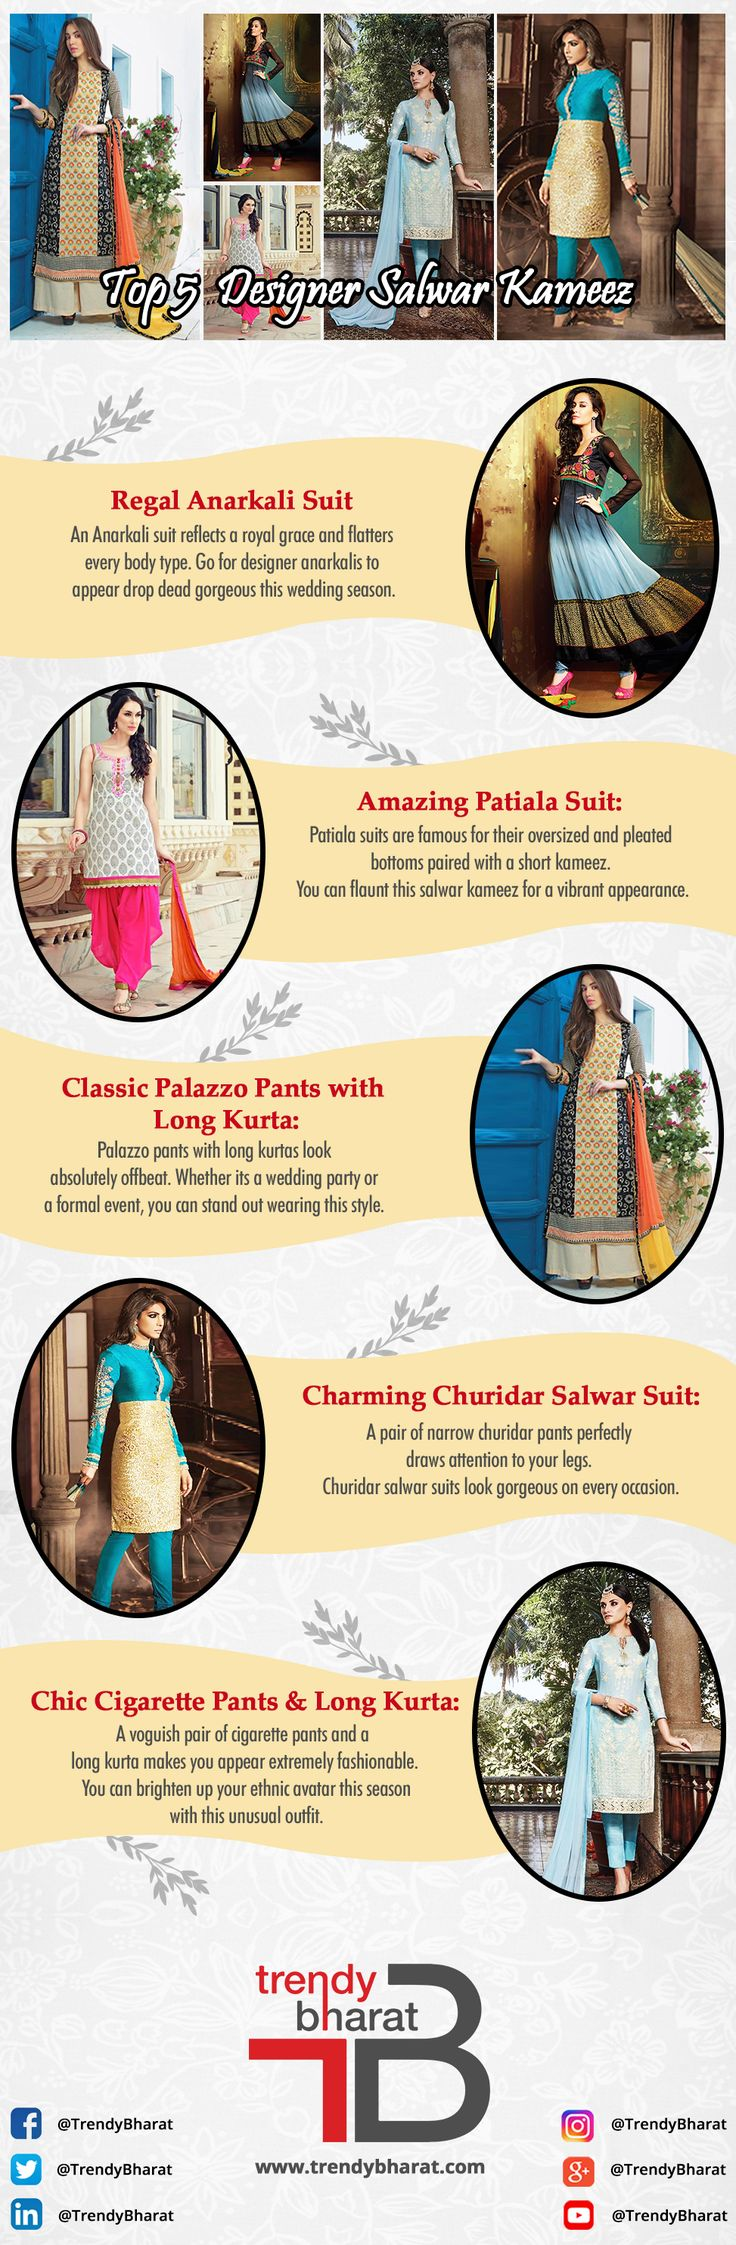 Simplicity gives the best in result, when it comes to beauty so pick your style and flaunt your Indian look. #womensfashion #salwarkameez #anarkalisuits #latestdesignersuits #ladiessalwarkameez